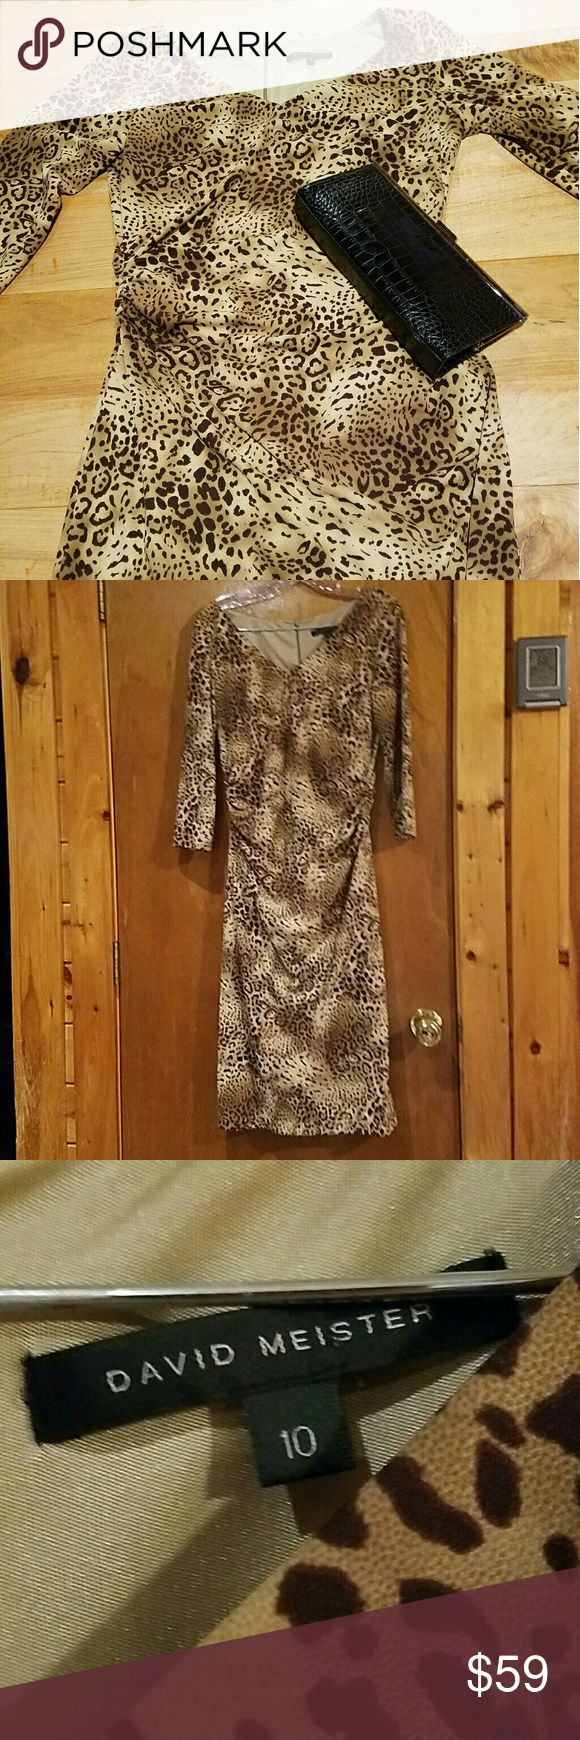 David Meister Cheetah Print Dress This dress is so flattering- the fabric is heavy and drapes well, and the ruching at the waist hides a lot of sins. Perfect for date night. Beautiful condition, smoke free home. David Meister Dresses